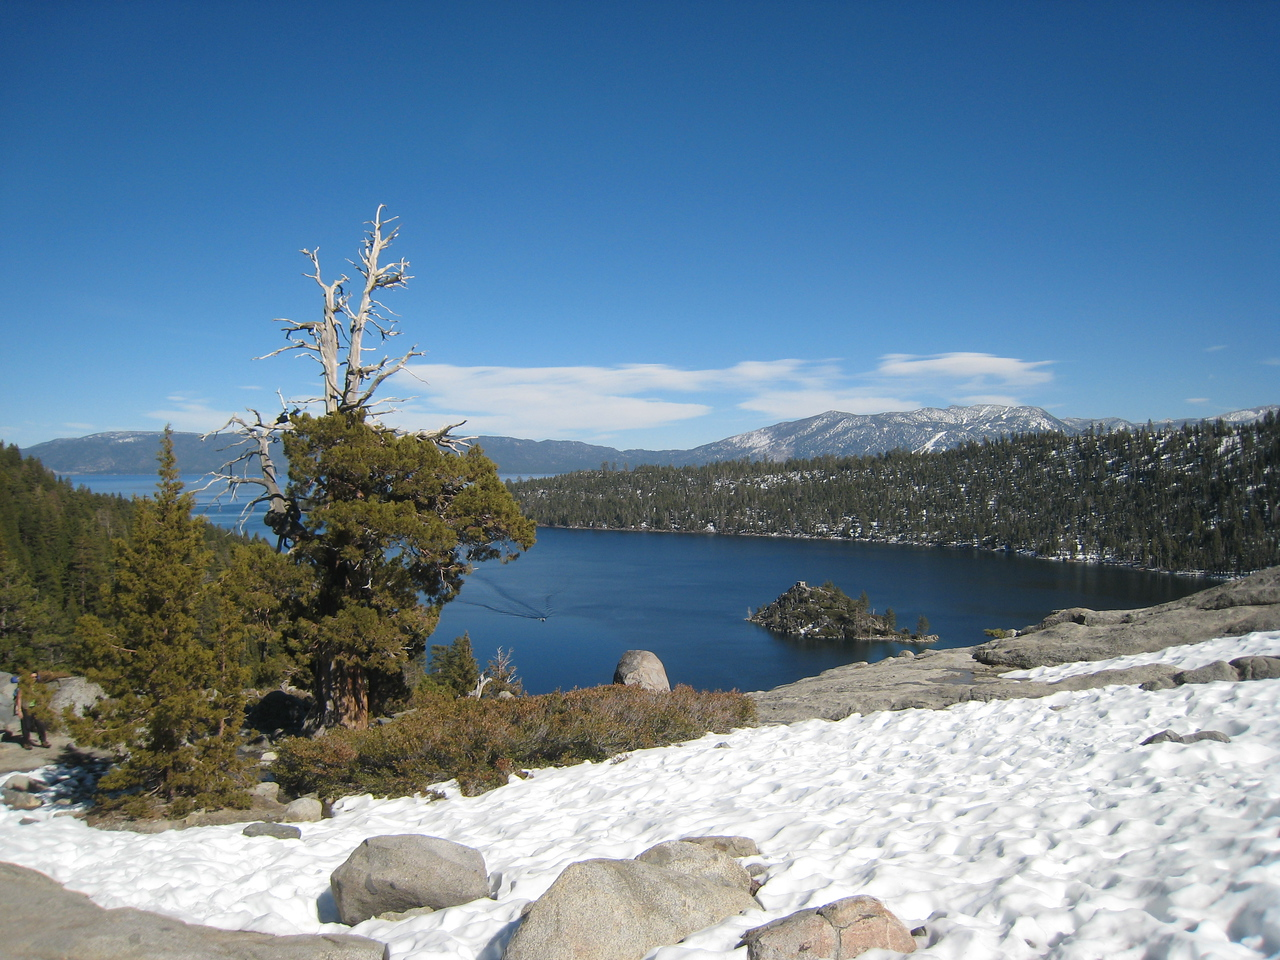 At the southwest corner of the lake, we find Emerald Bay.  I stop the bike and take a few snapshots at the viewing area.